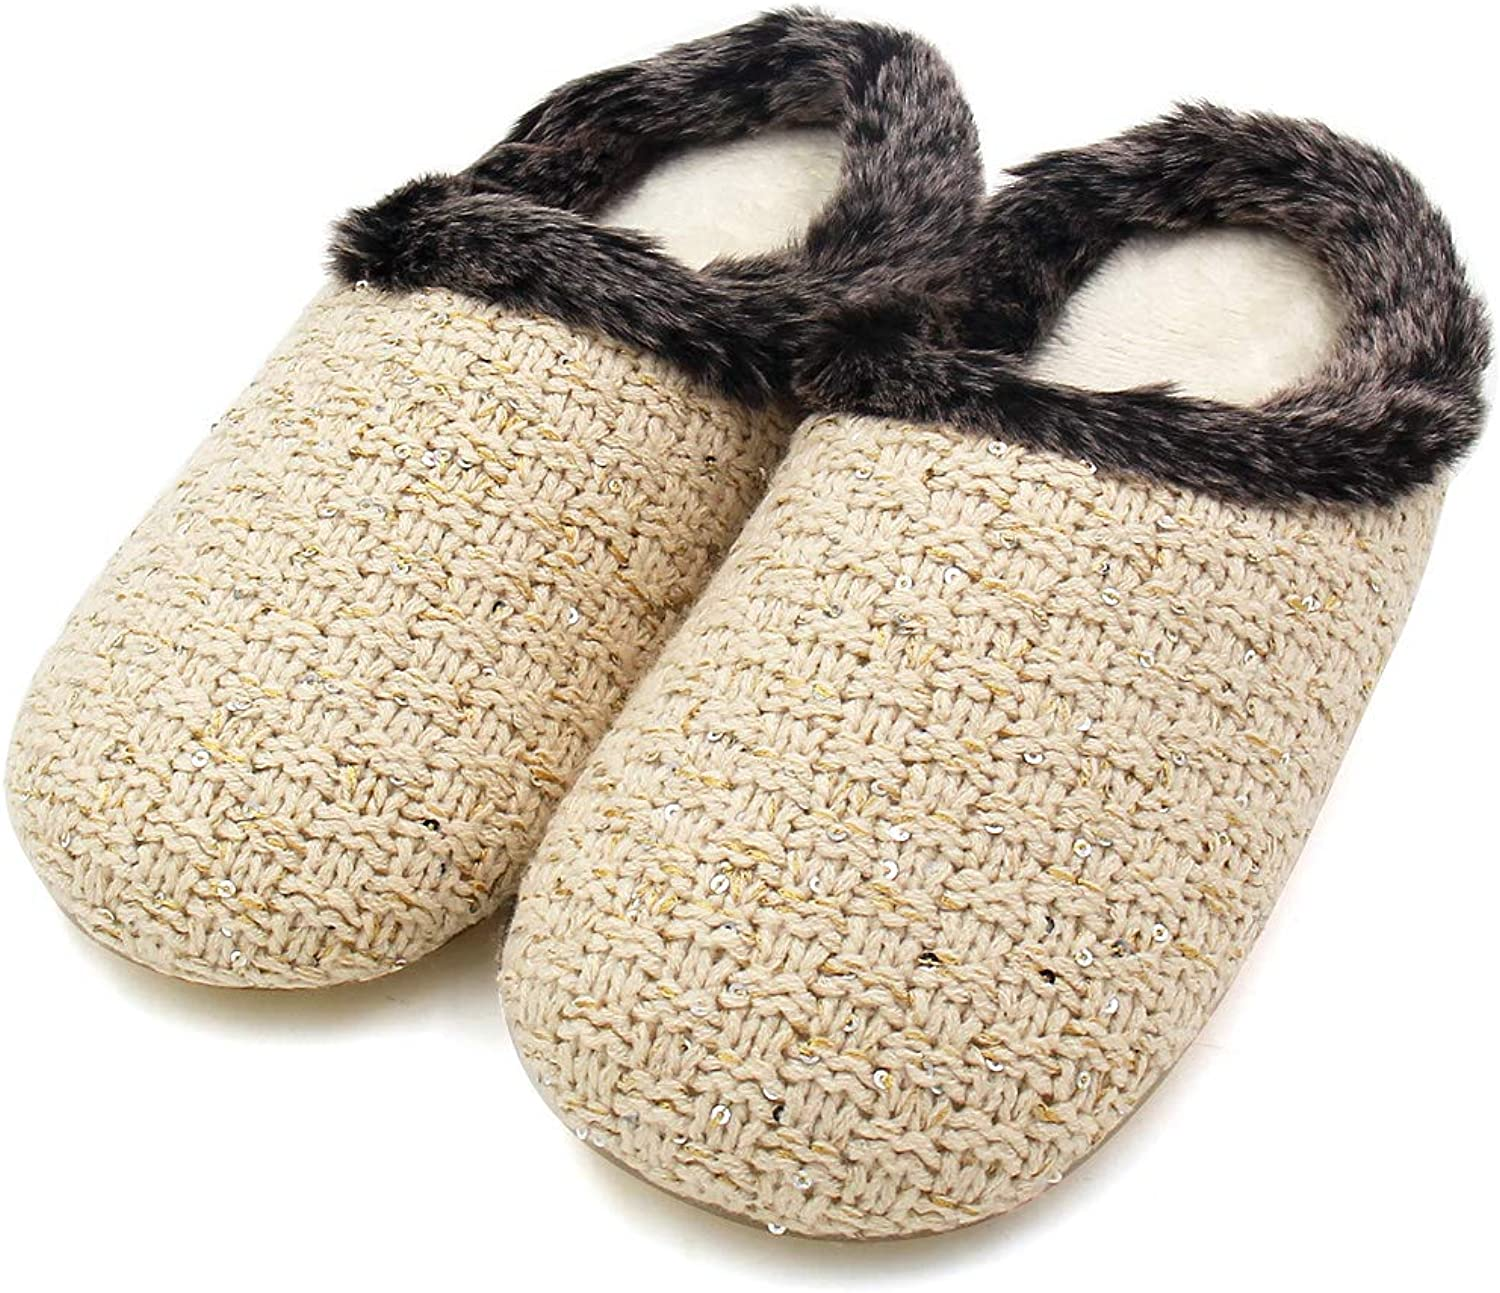 ALOTUS Women's Hand Knitted Soft Warm Woolen Slippers with Fur Indoor